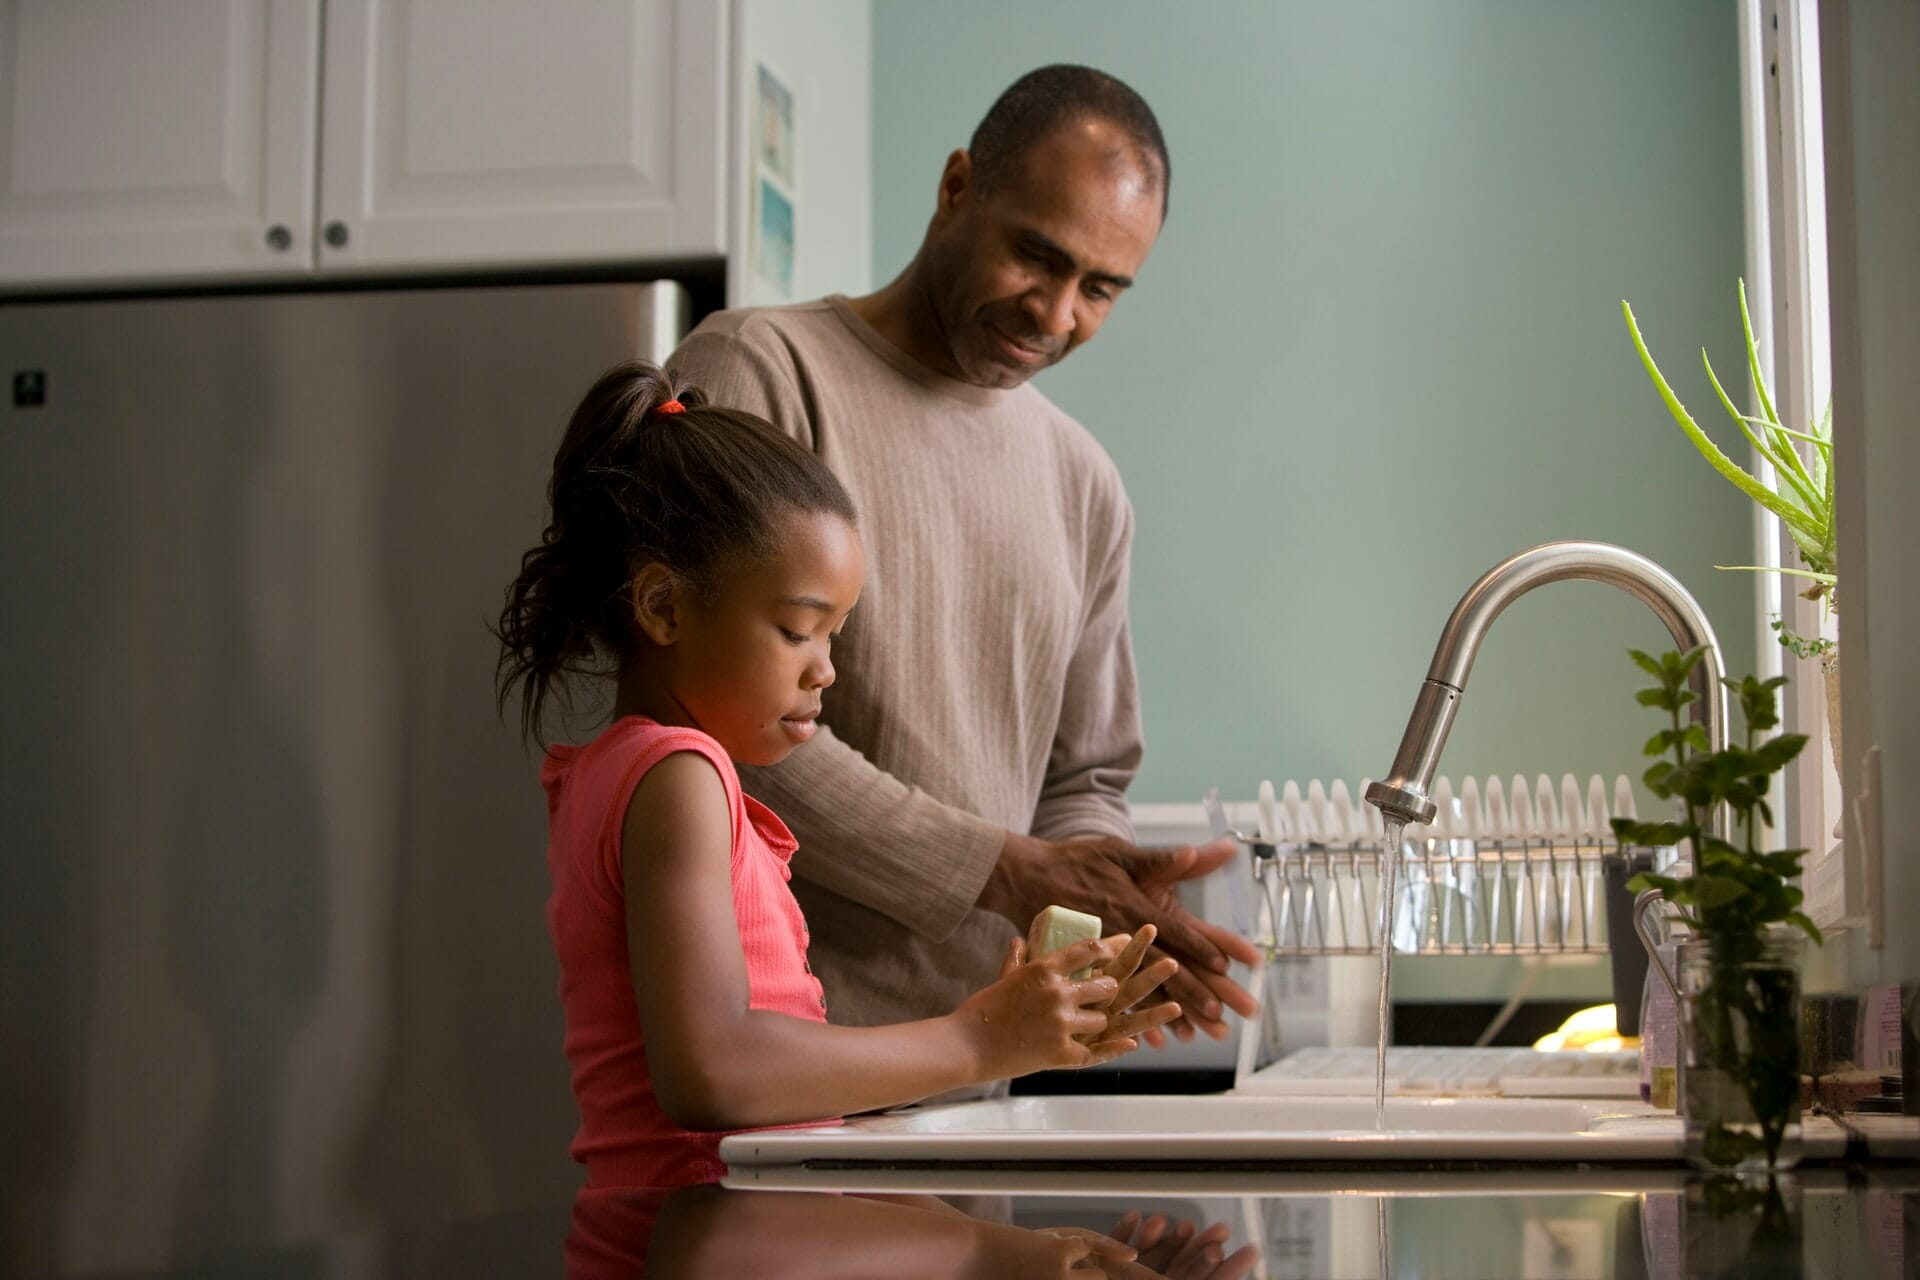 Father and daughter washing hands at kitchen sink.